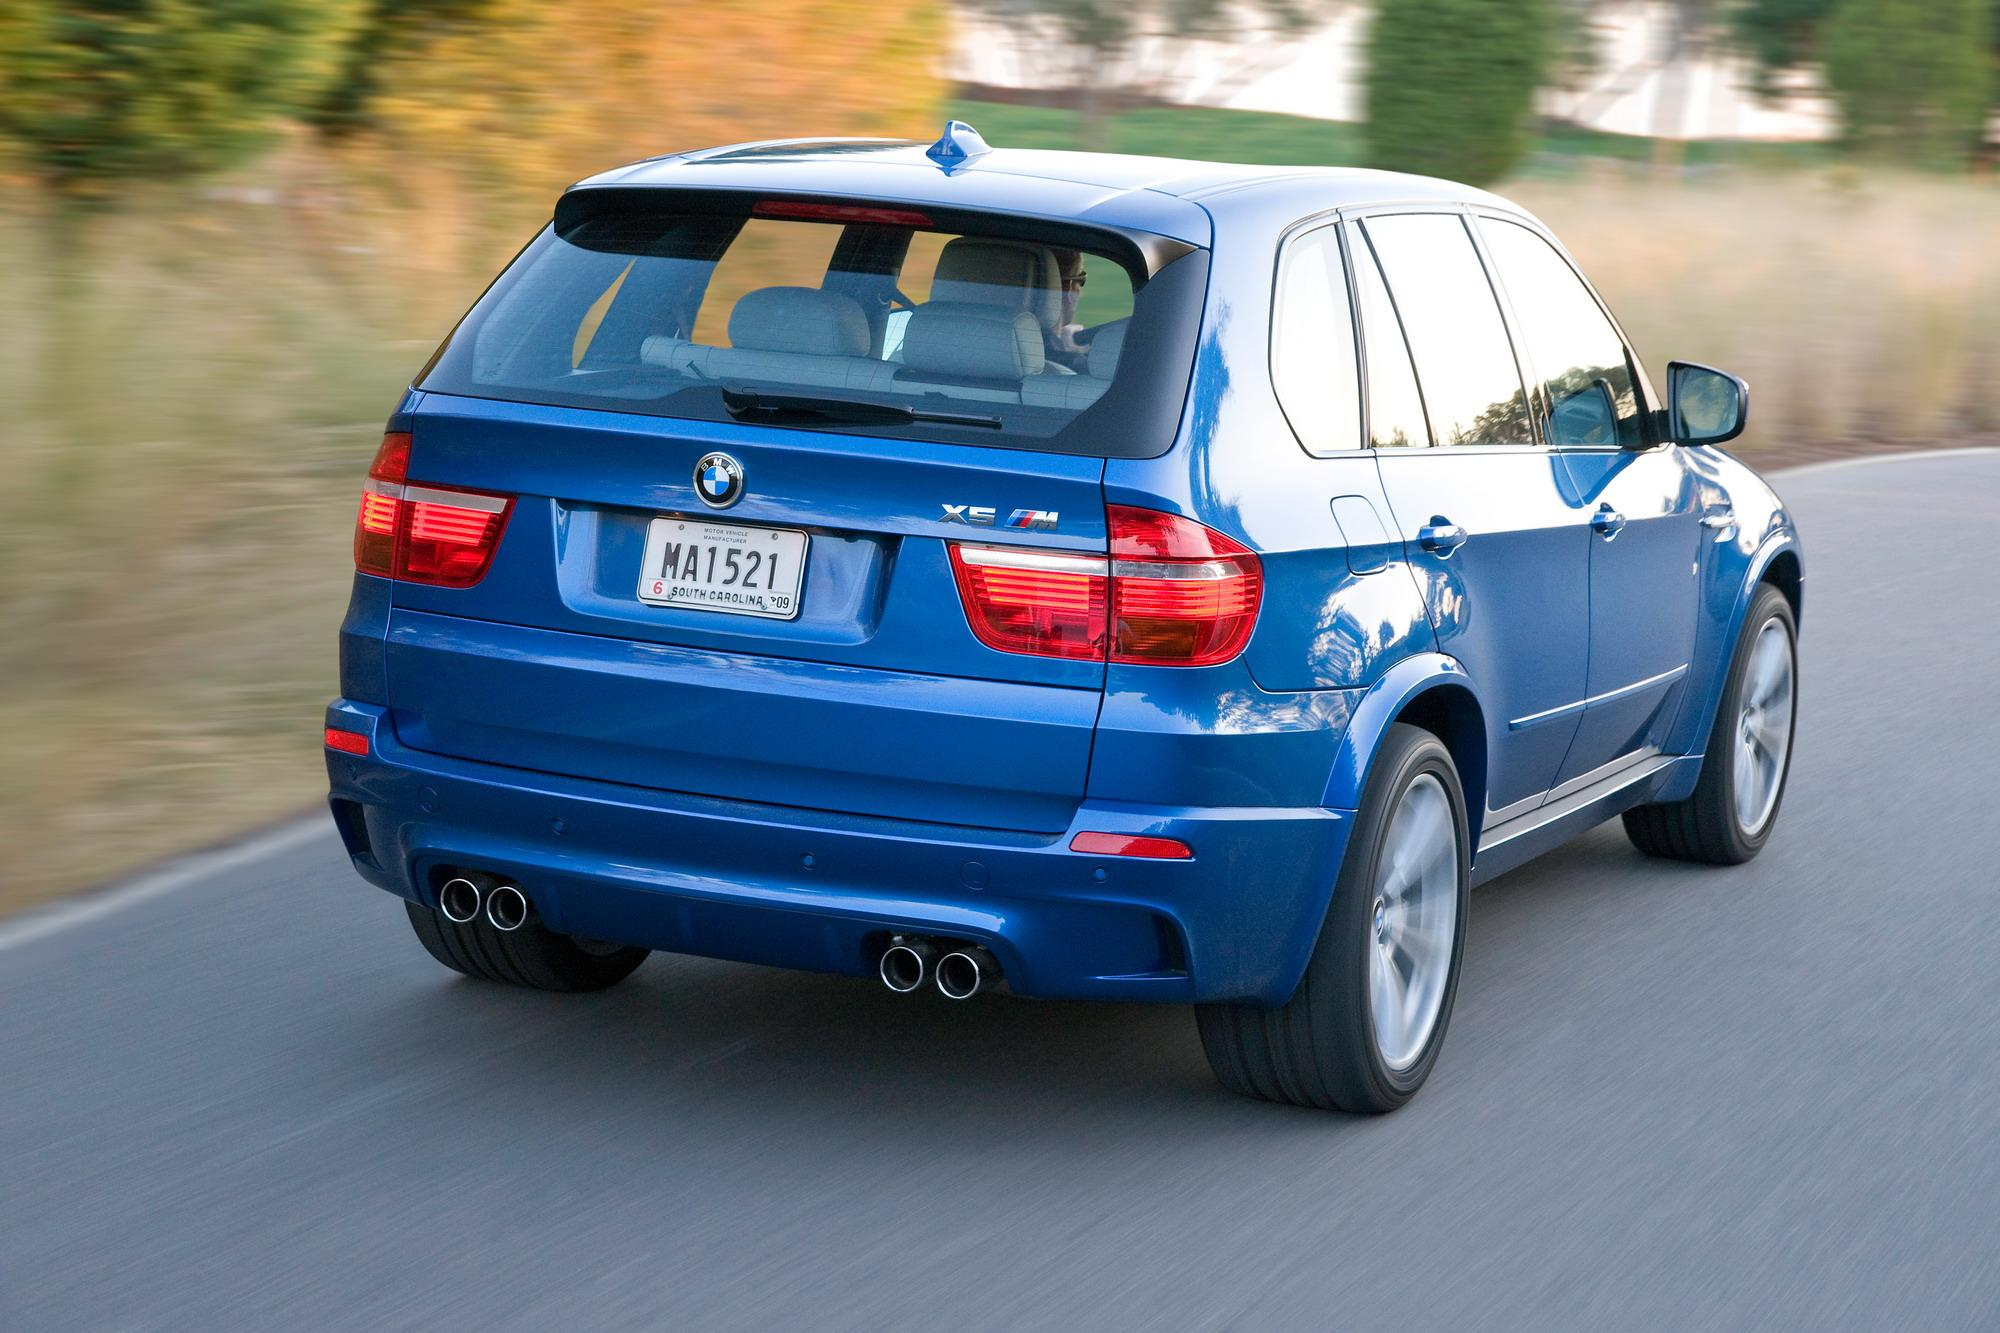 2010 BMW X5 M | Top Speed